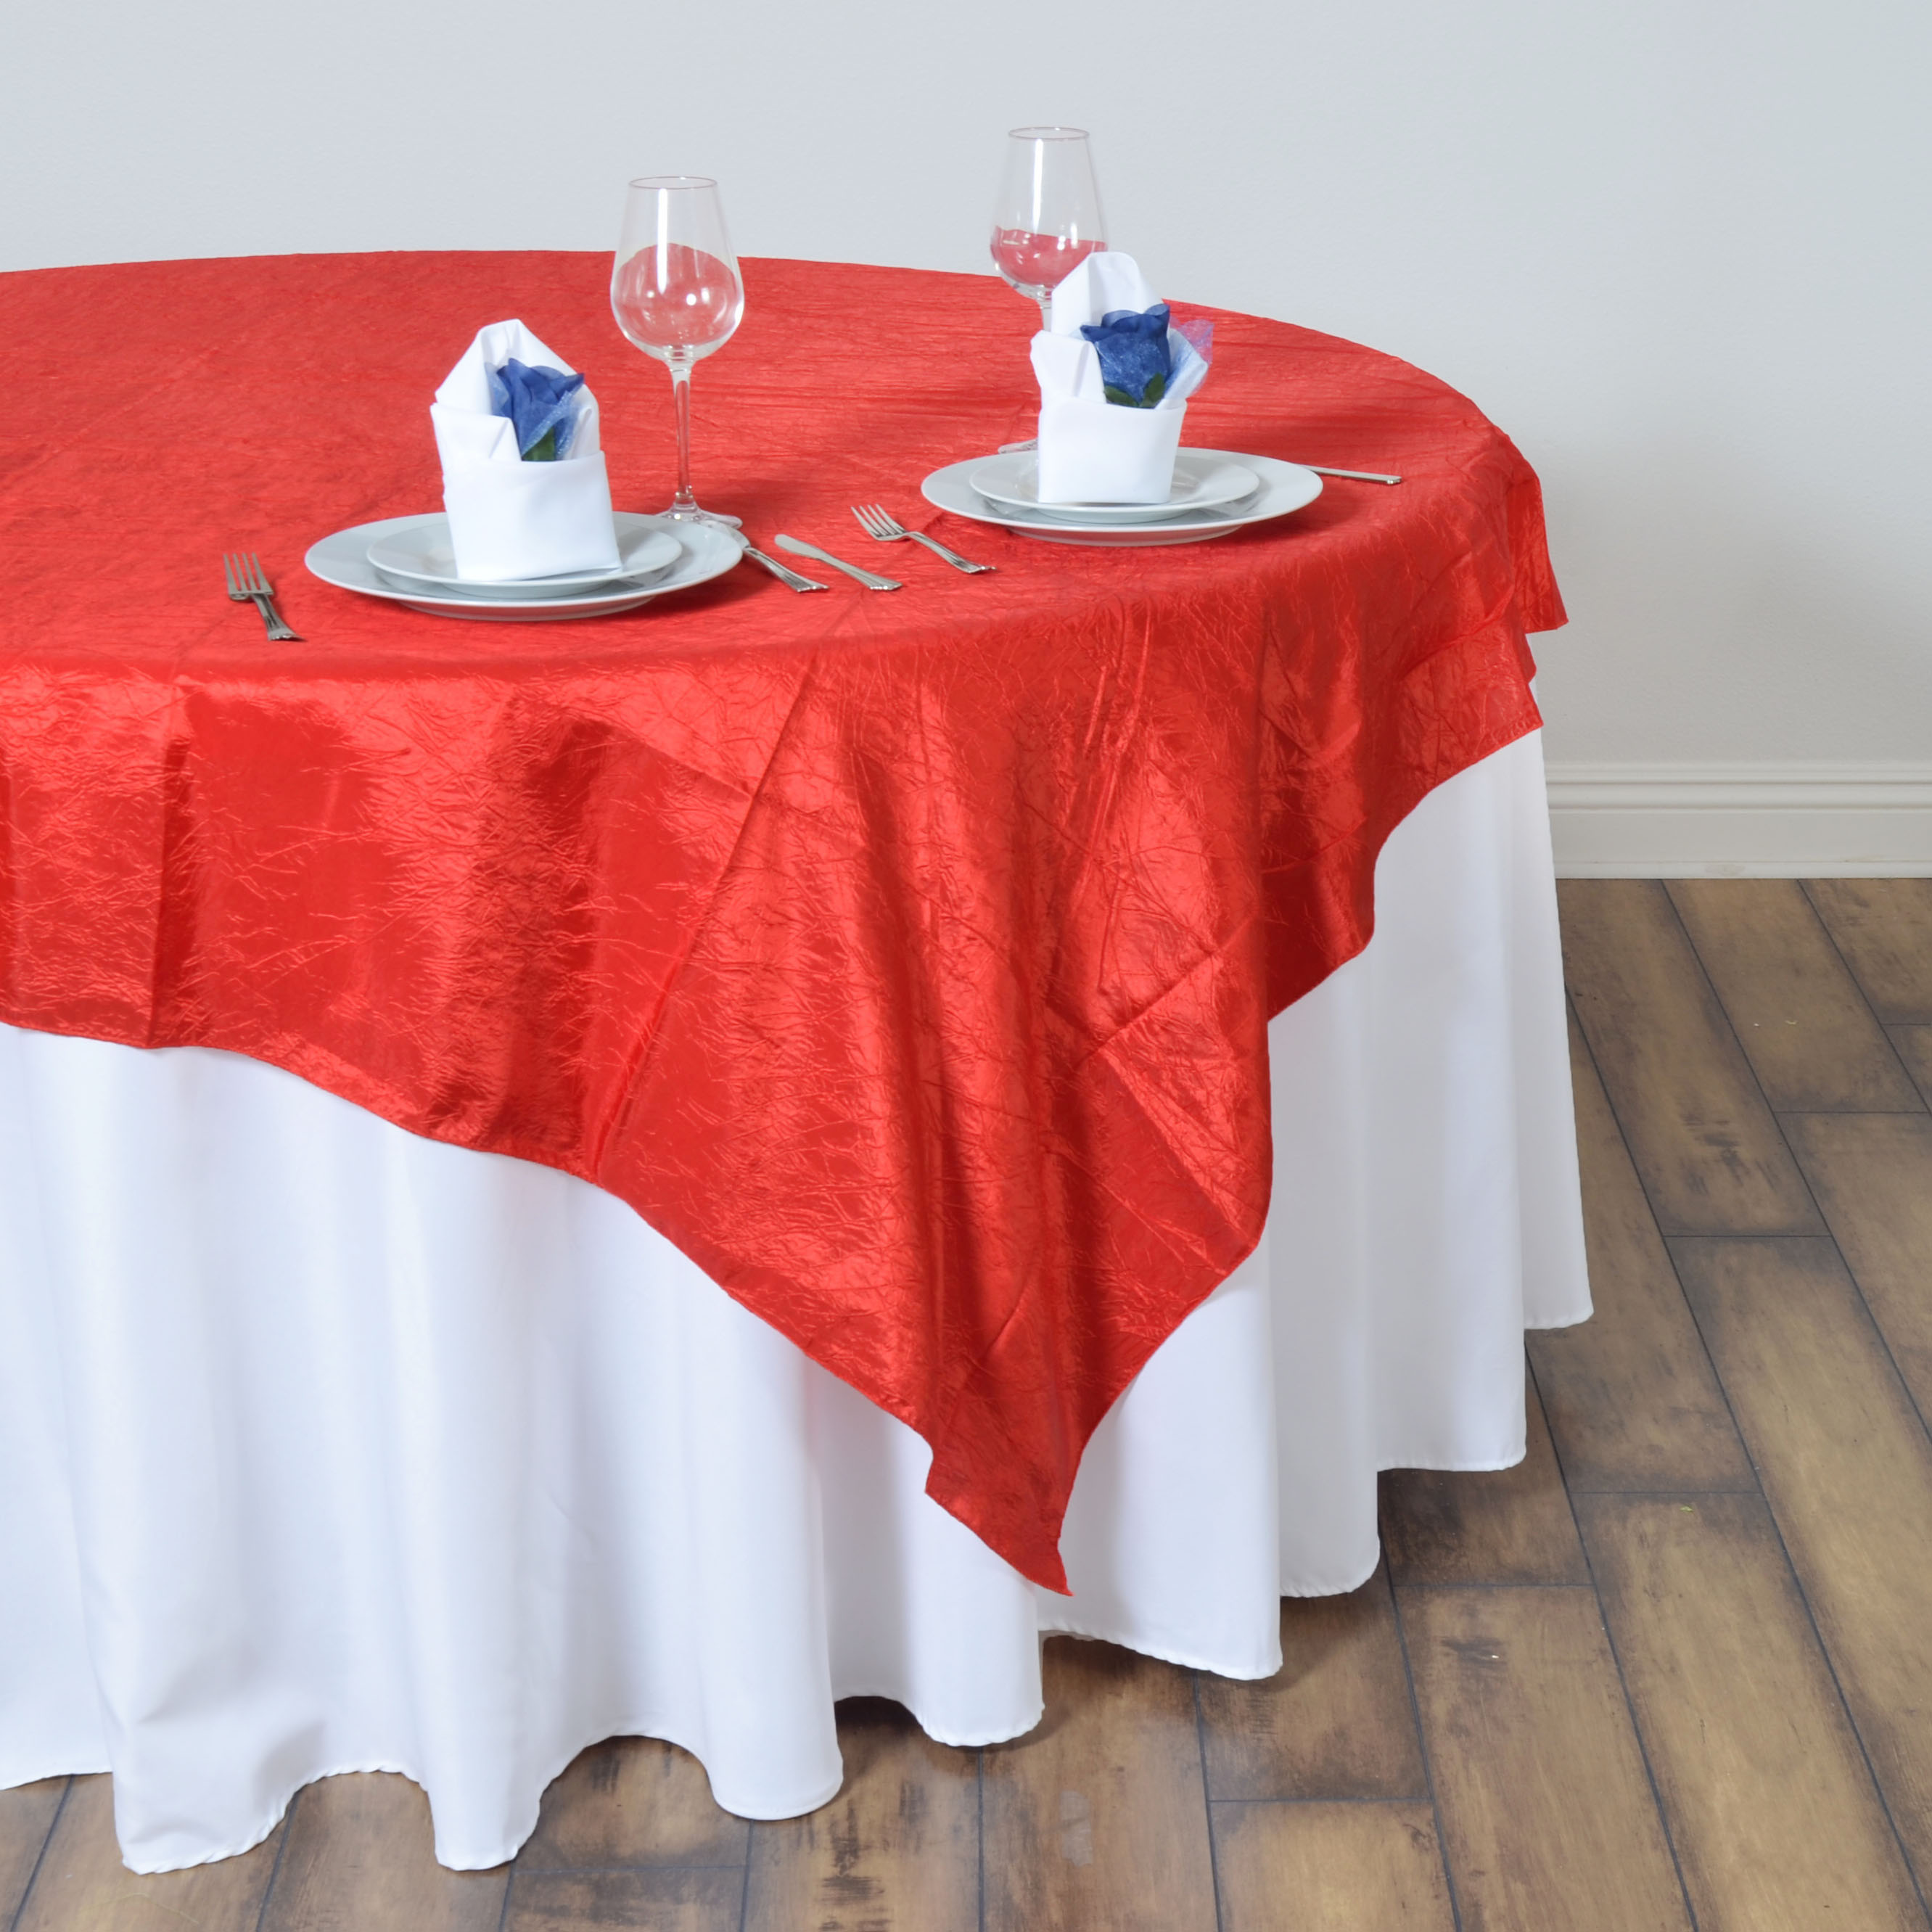 60x60 Quot Taffeta Crinkled Table Overlay Wedding Party